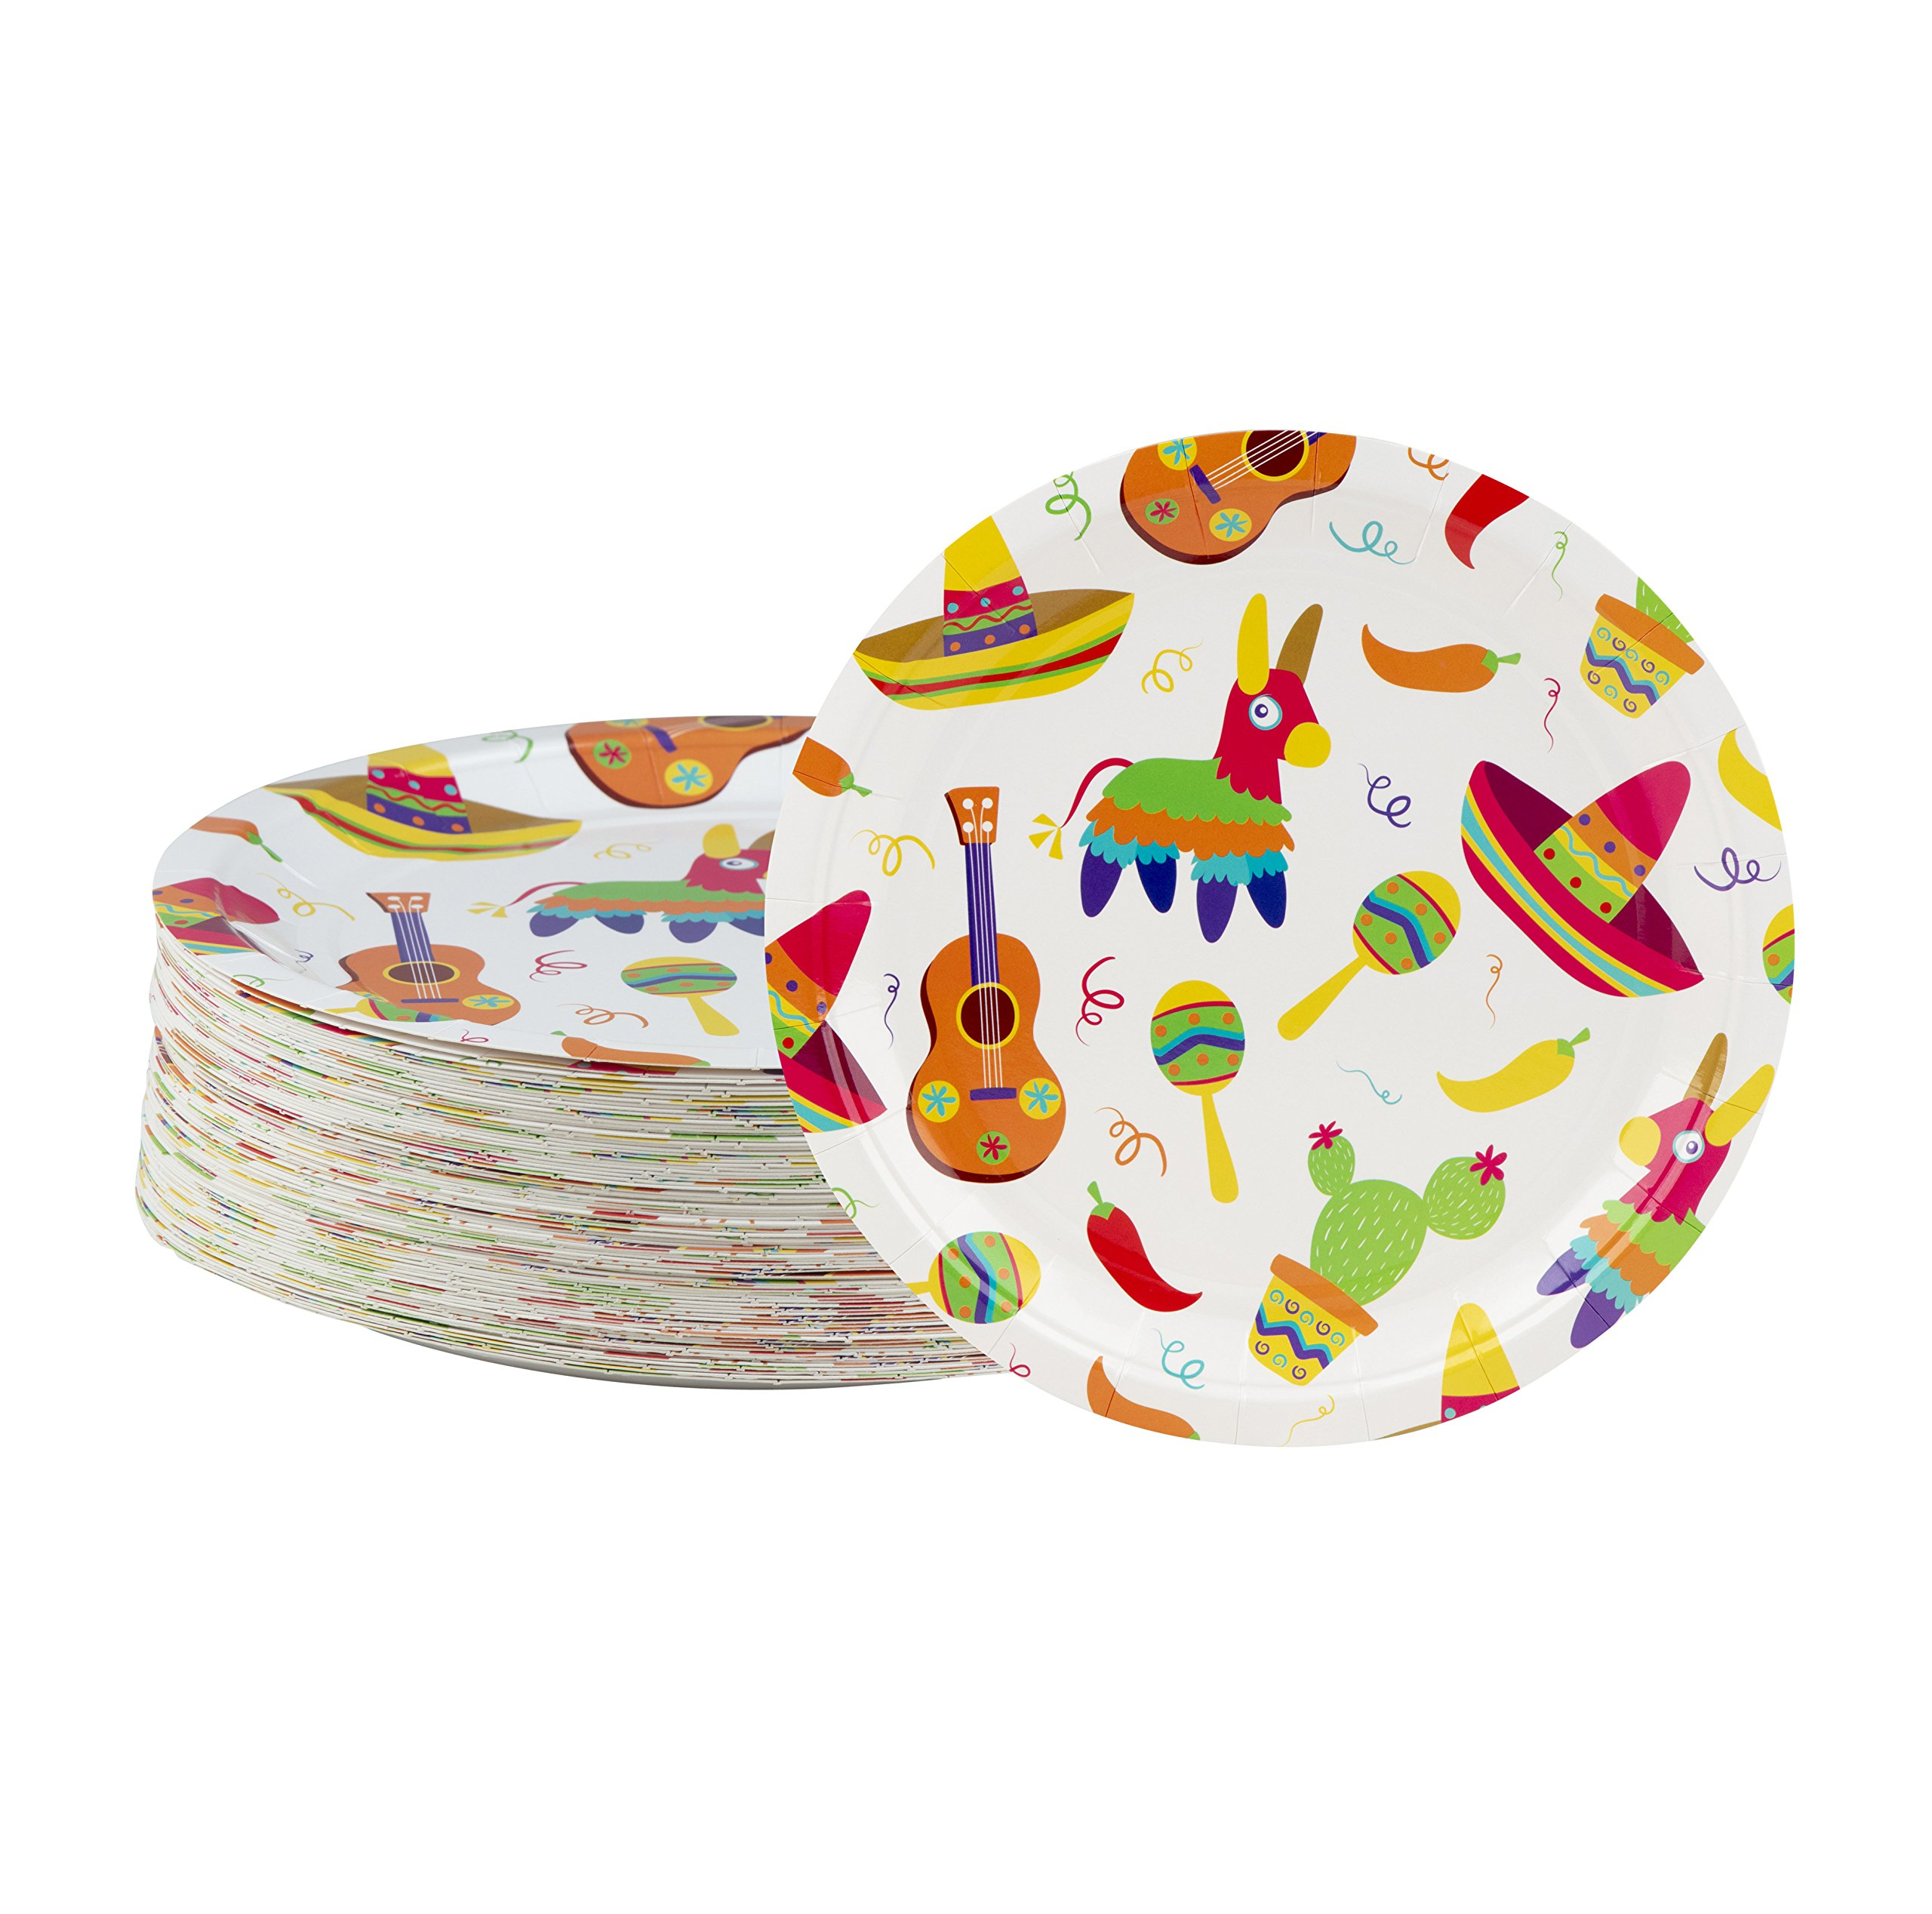 Disposable Plates - 80-Count Paper Plates, Mexican Fiesta Party Supplies for Appetizer, Lunch, Dinner, and Dessert, Birthdays, Cinco de Mayo, 9 x 9 Inches by Blue Panda